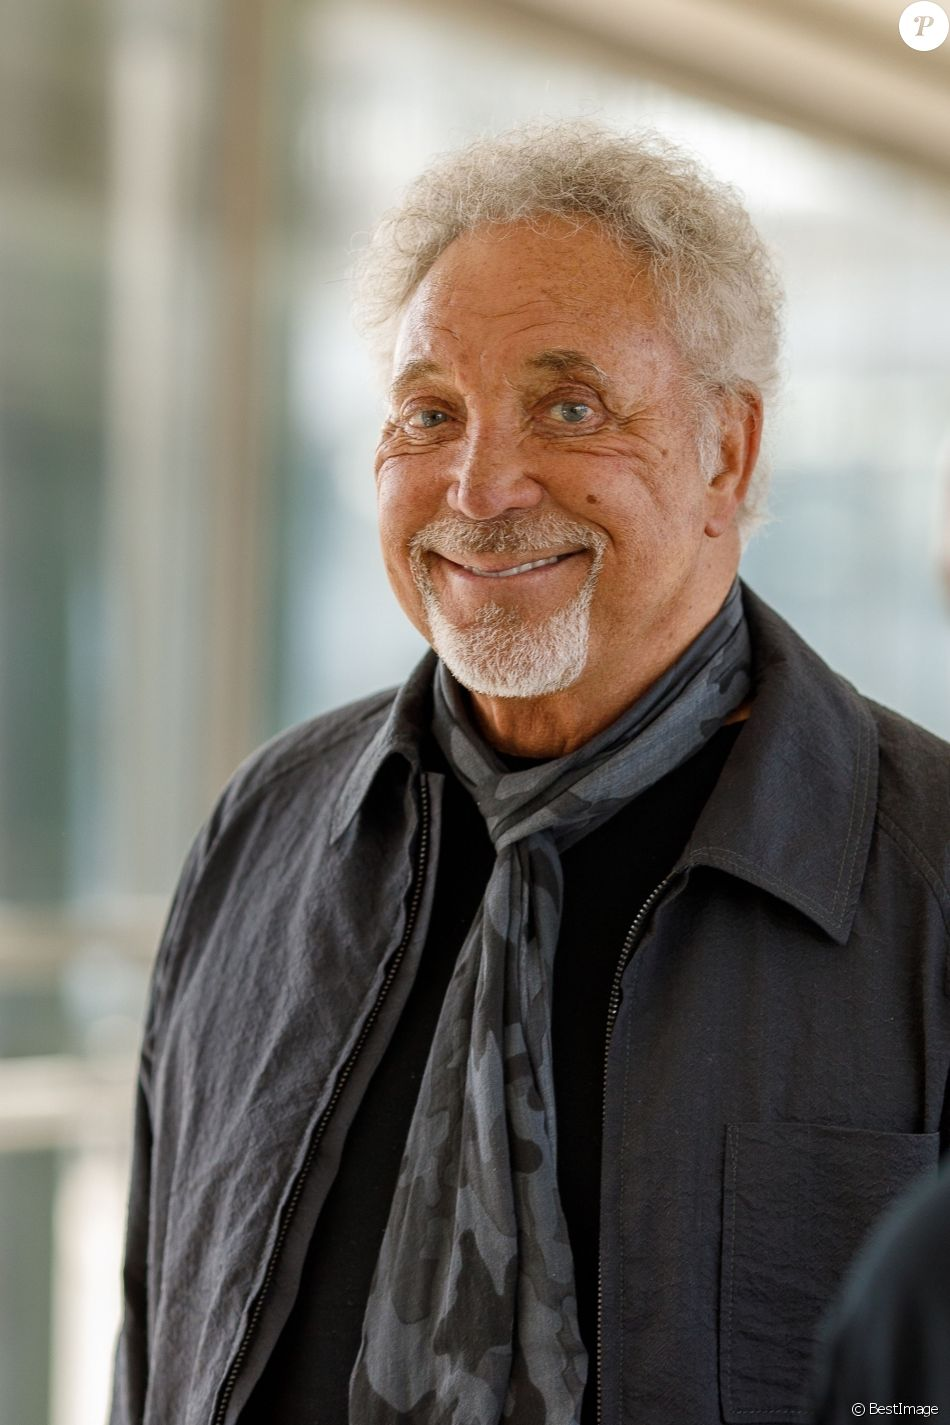 Exclusif - Tom Jones arrive à l'aéroport de Heathrow à Londres, le 6 juin 2018.